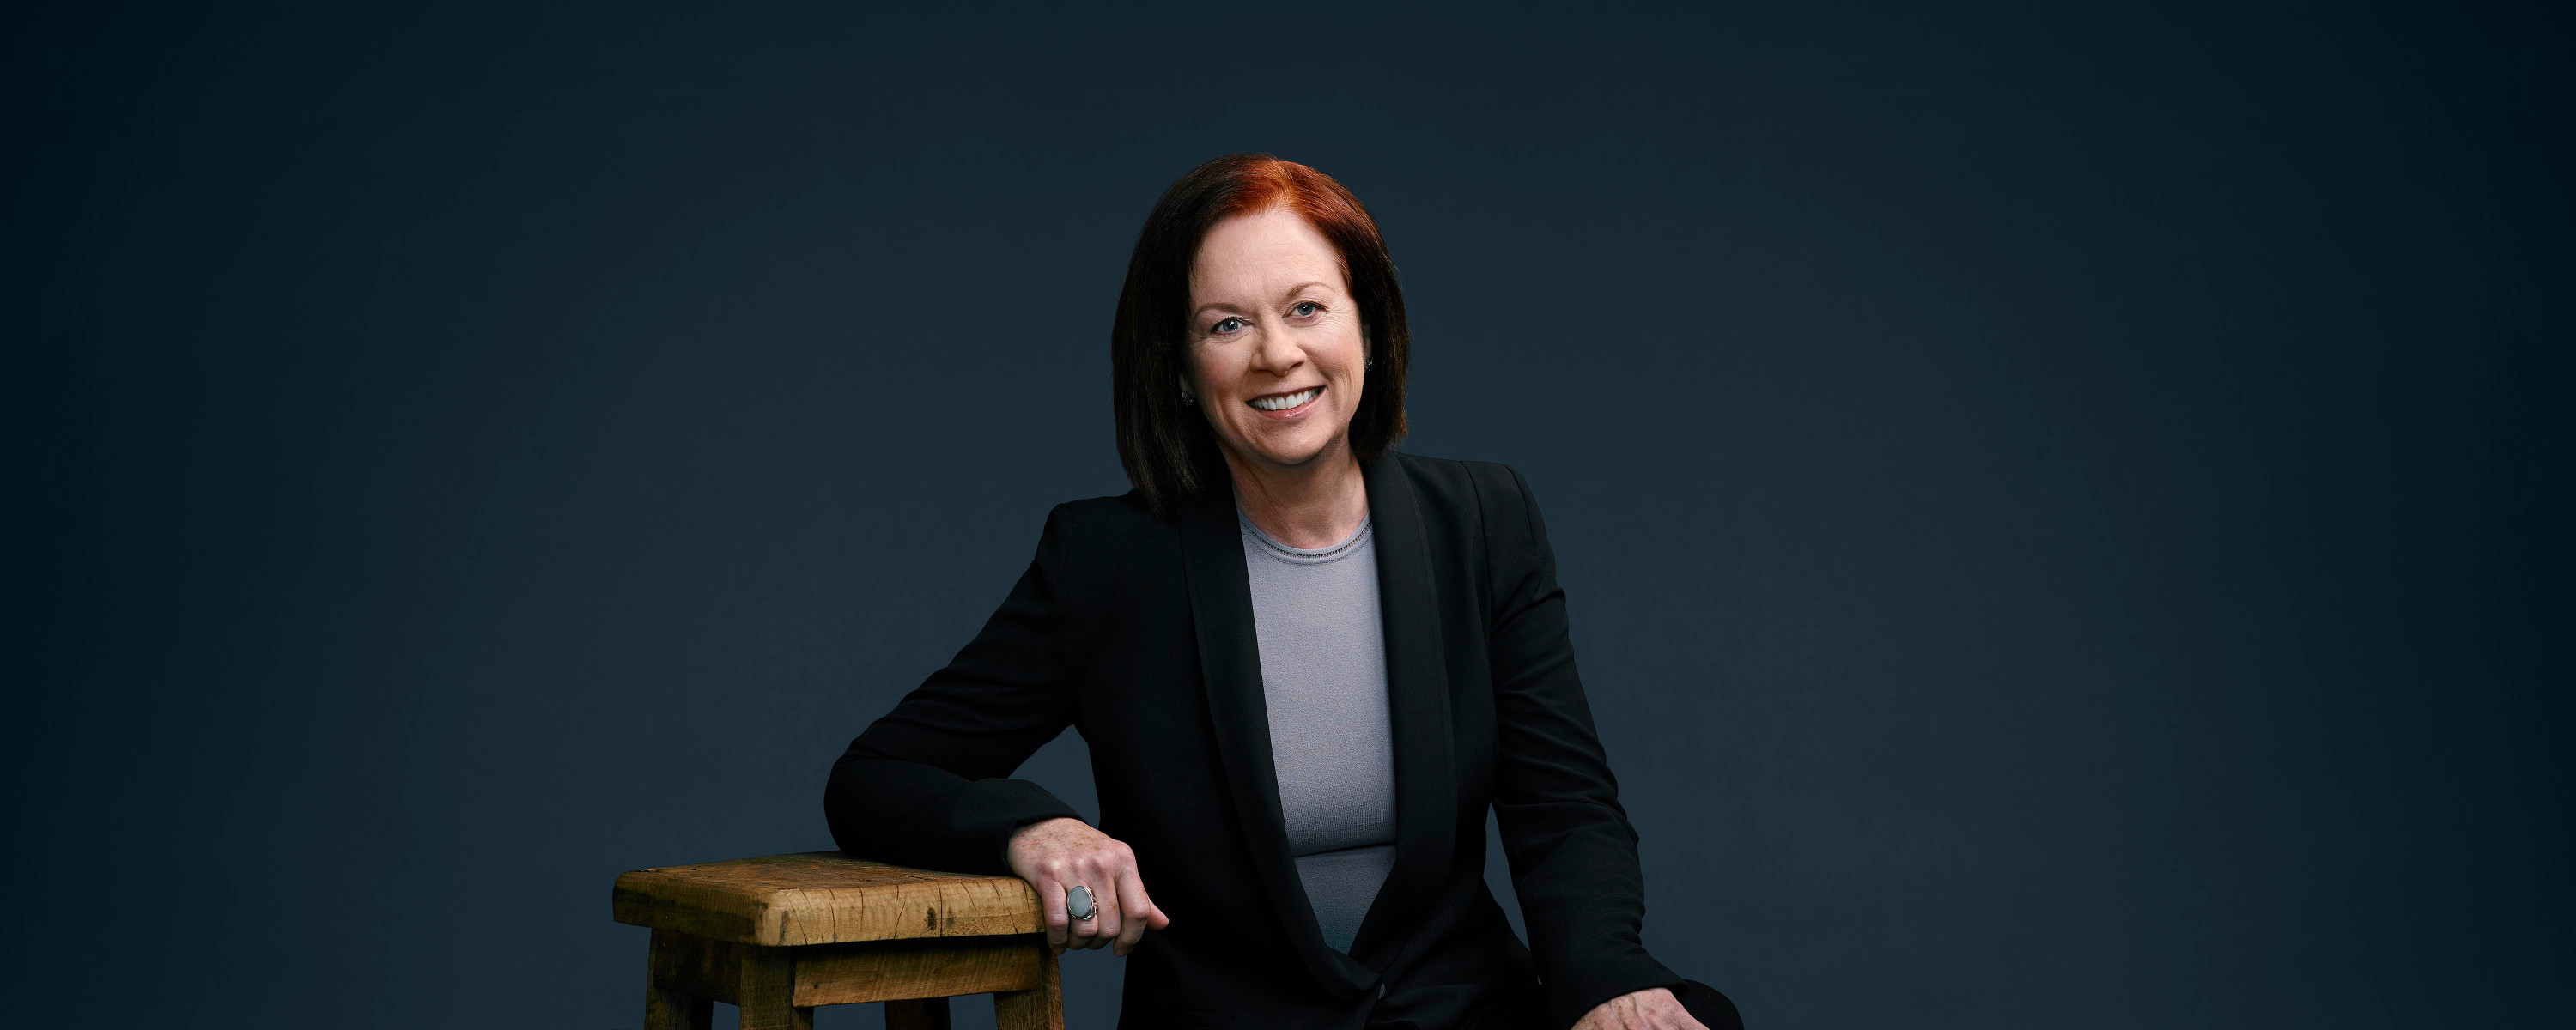 Amy O'Connor wird Chief Data and Information Officer (CDIO) bei Cloudera